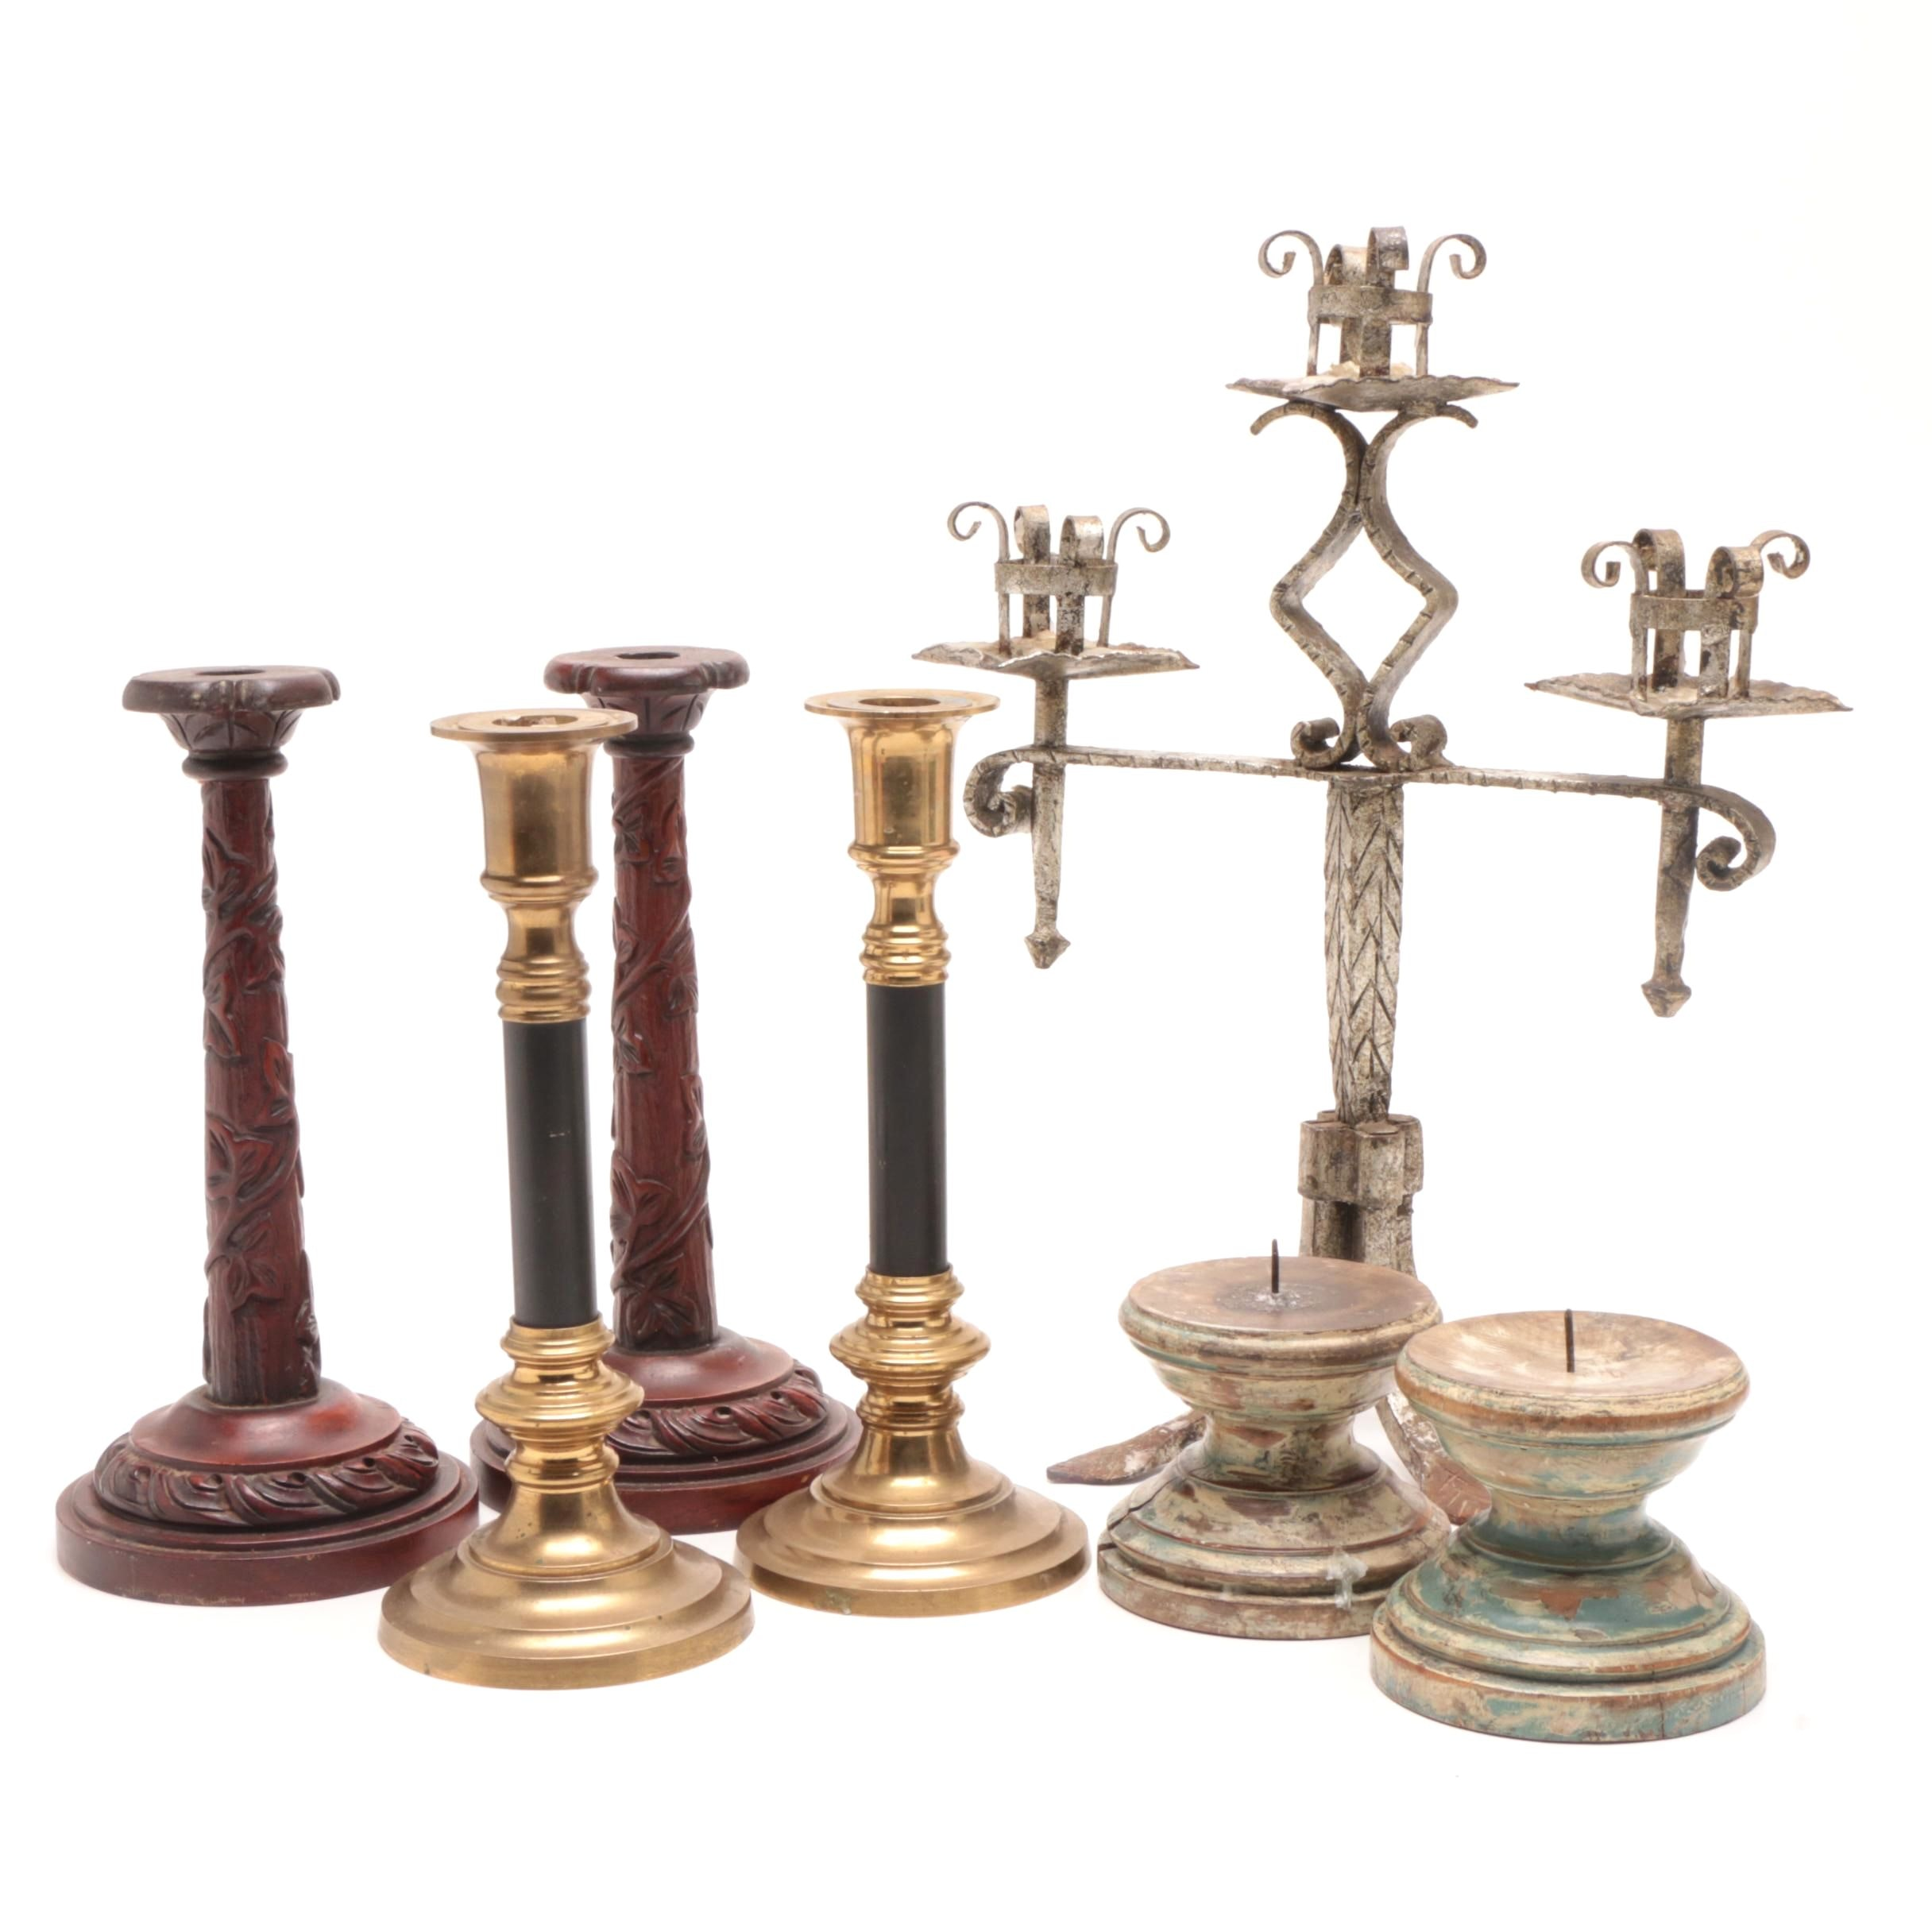 Solid Brass and Carved Wood Candlesticks and Holders